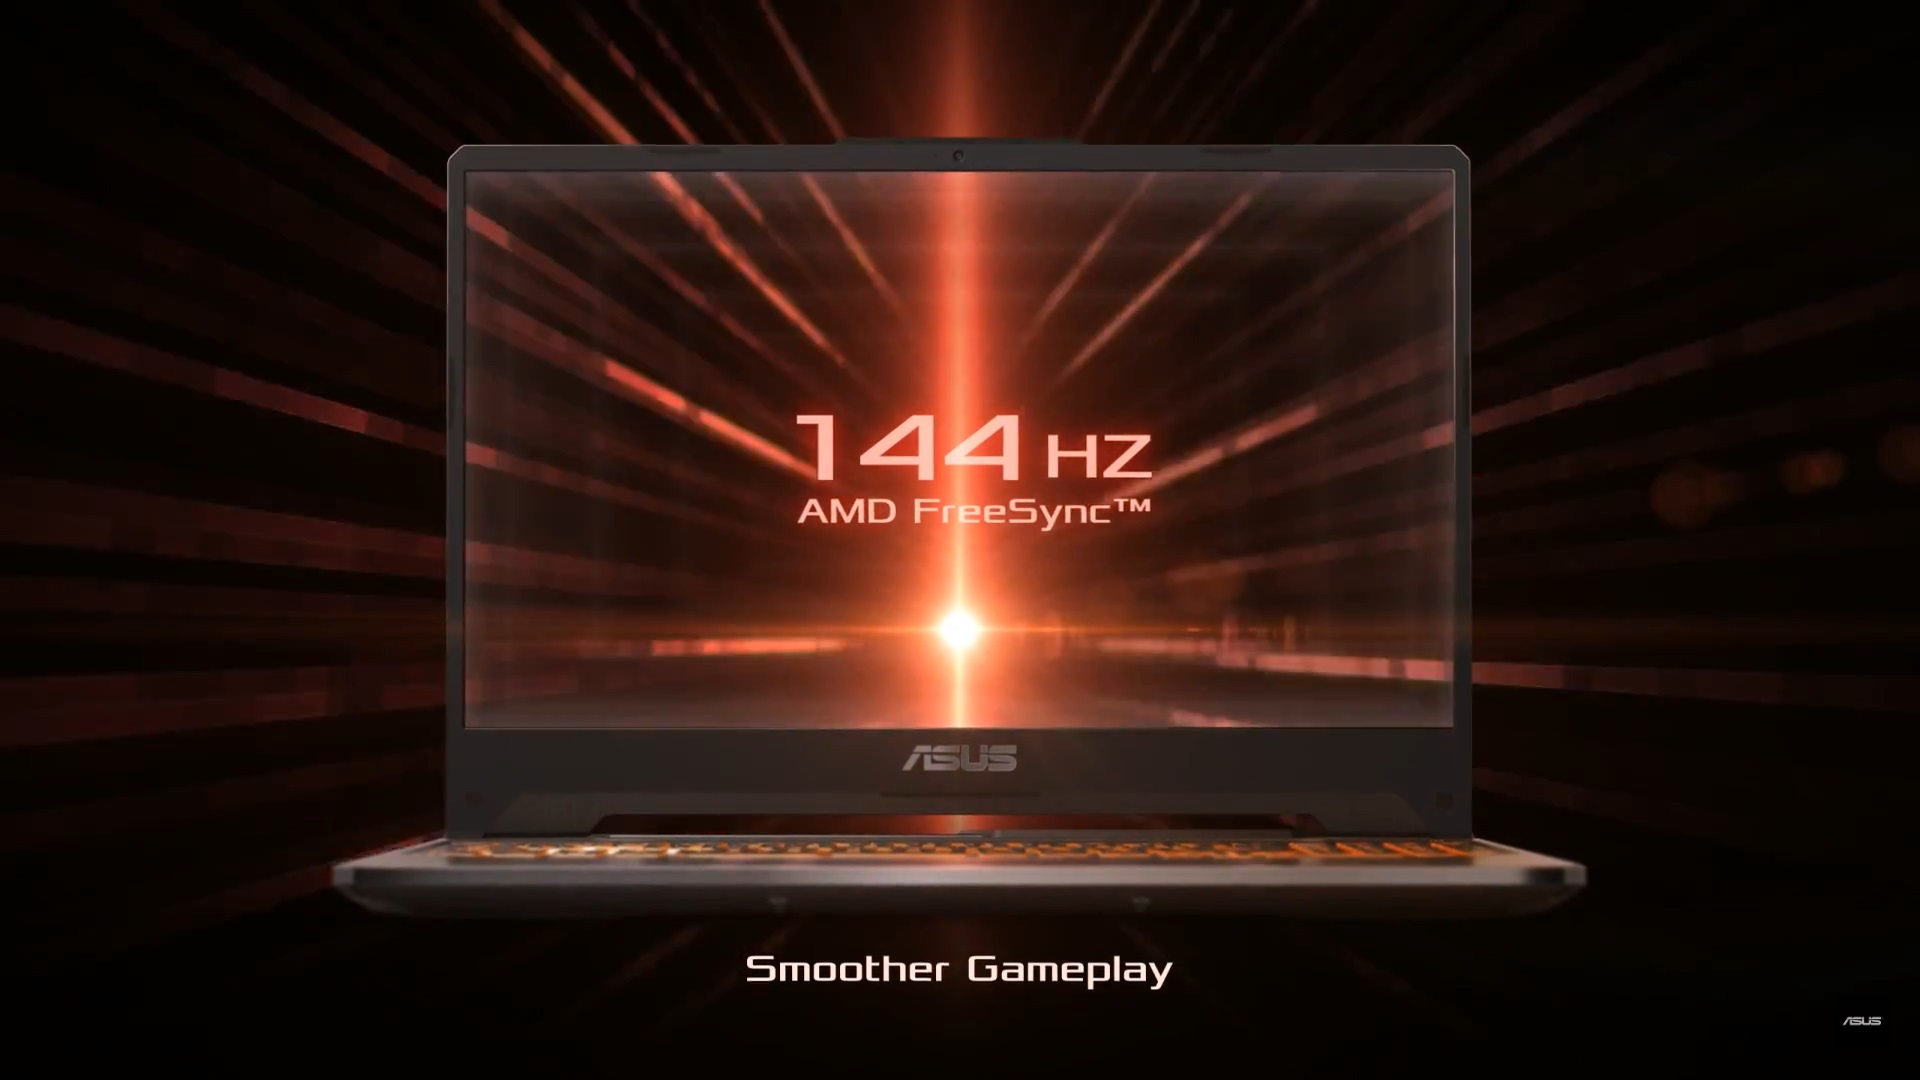 144hz-display-e-jpg.10070